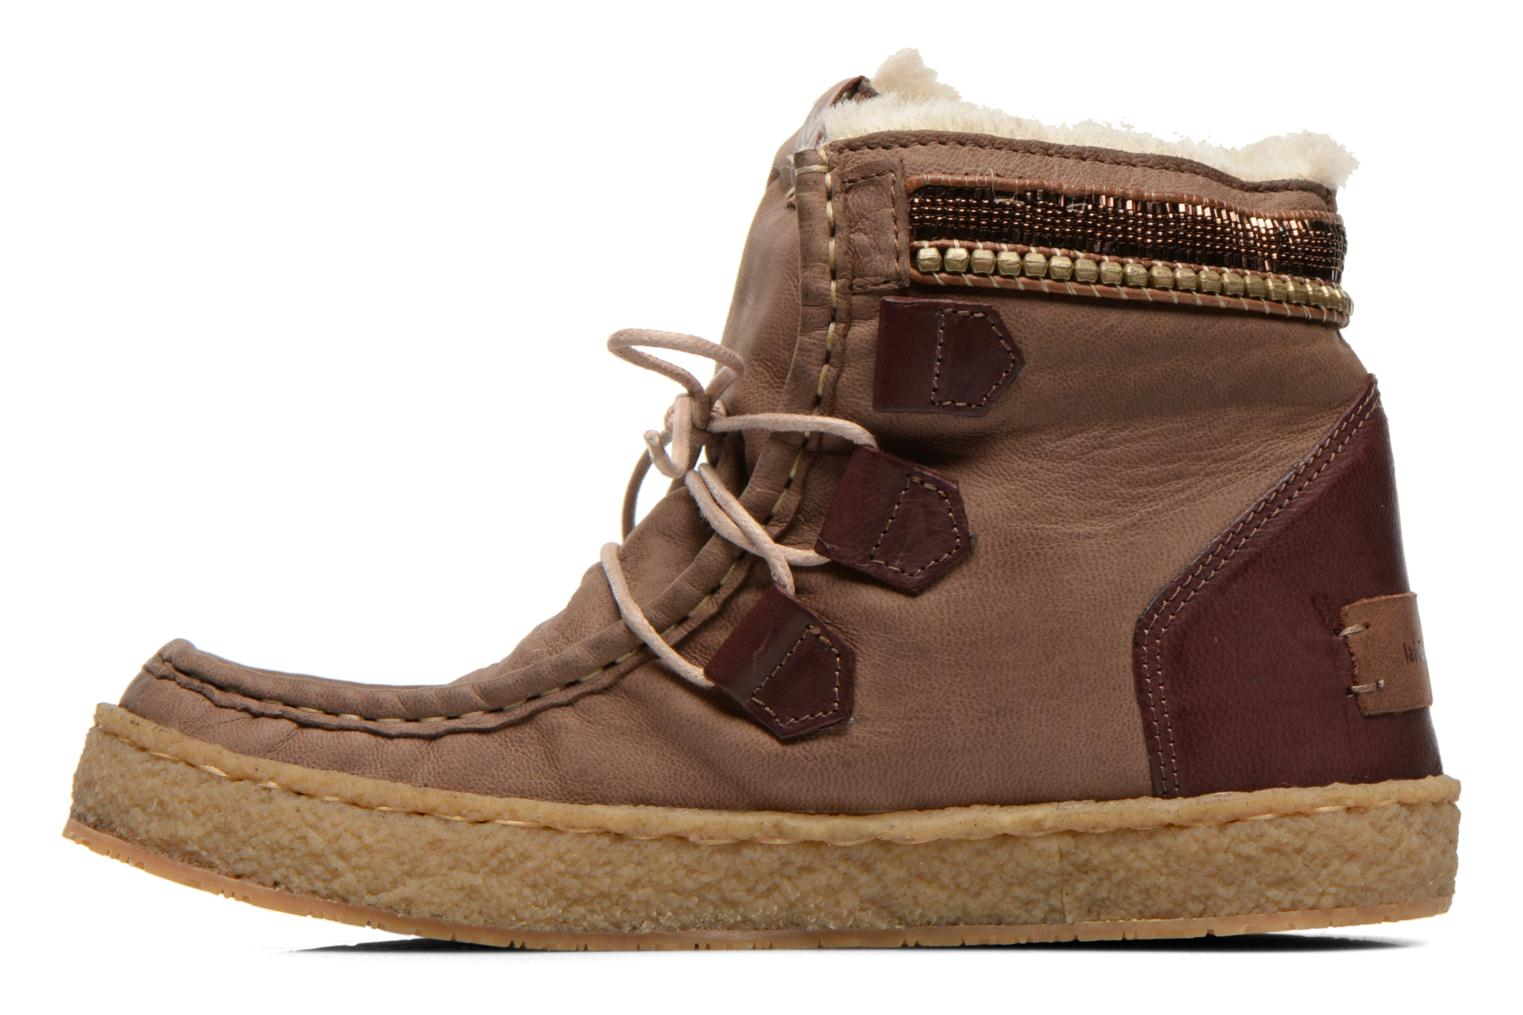 Annick Tokyo Brown leather